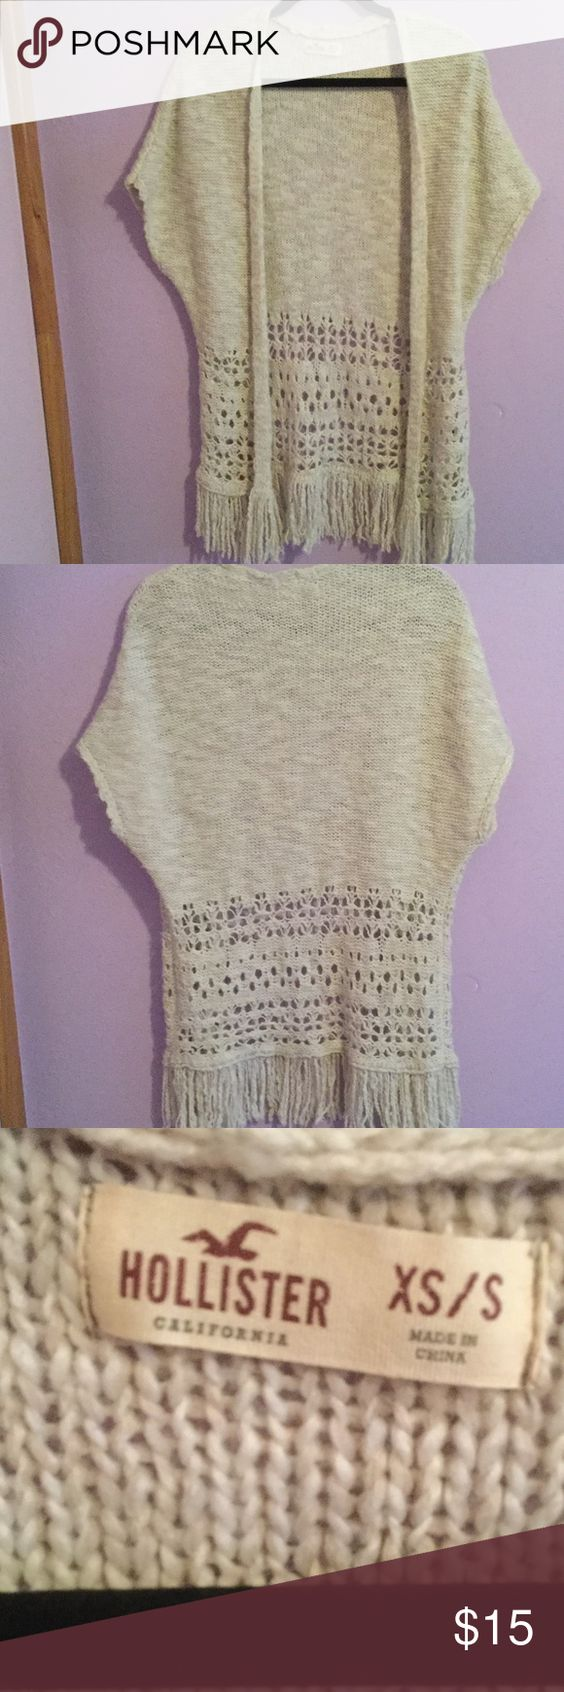 Hollister sweater Cute tan sweater with holes at the bottom. In great condition!! Worn only a couple times Hollister Sweaters Cardigans